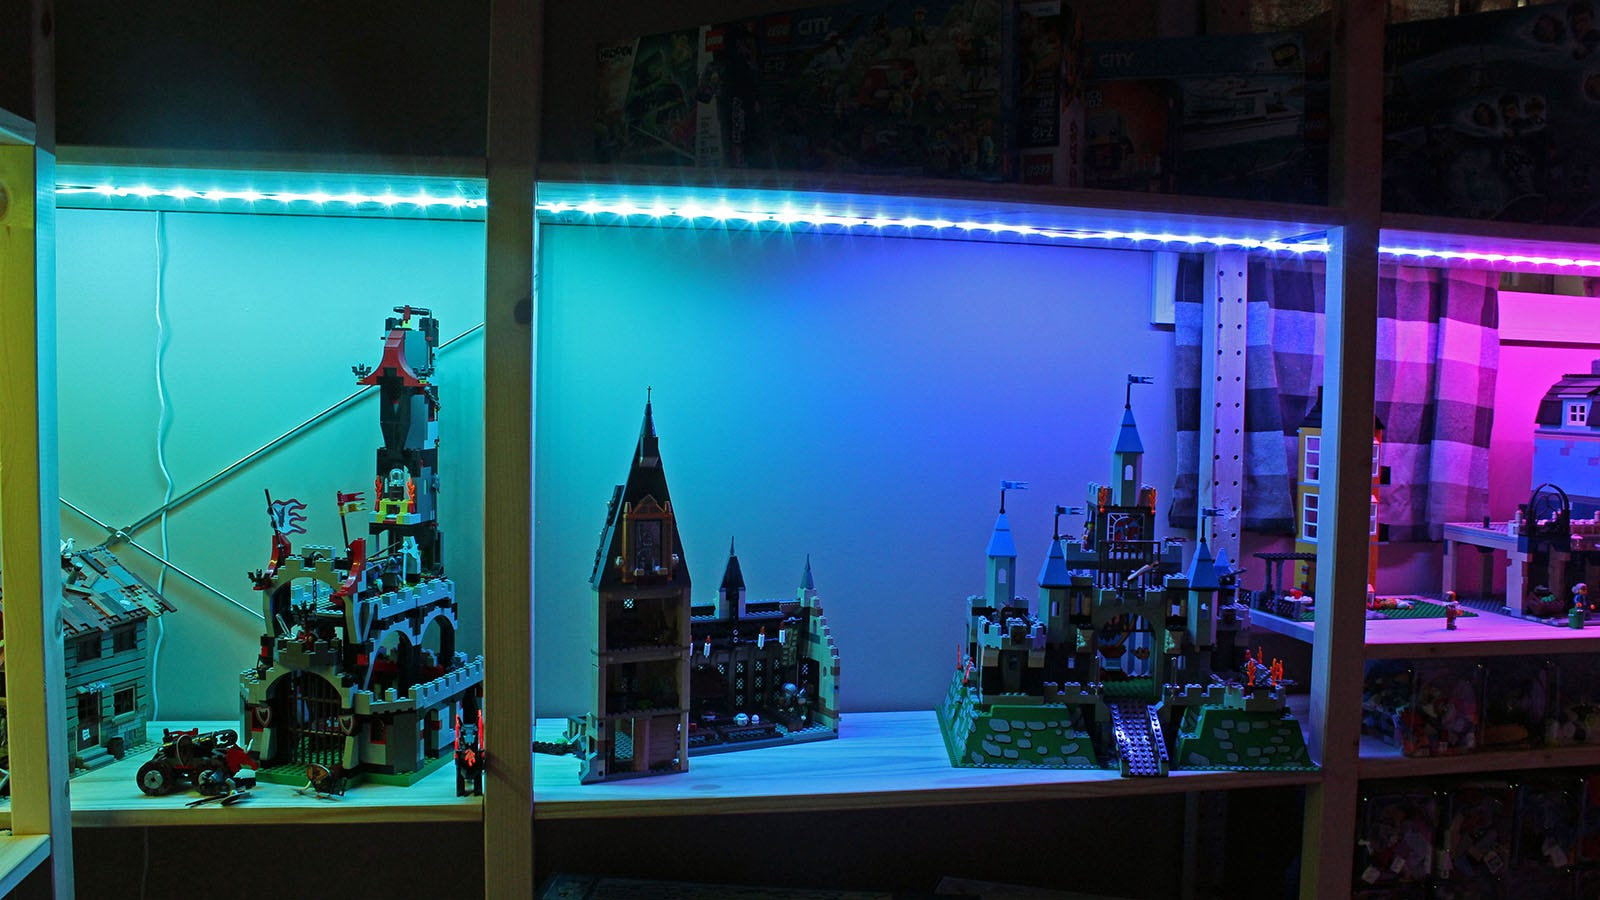 Three shelves of Lego bricks, one with green lights, one with purple, one with pink.